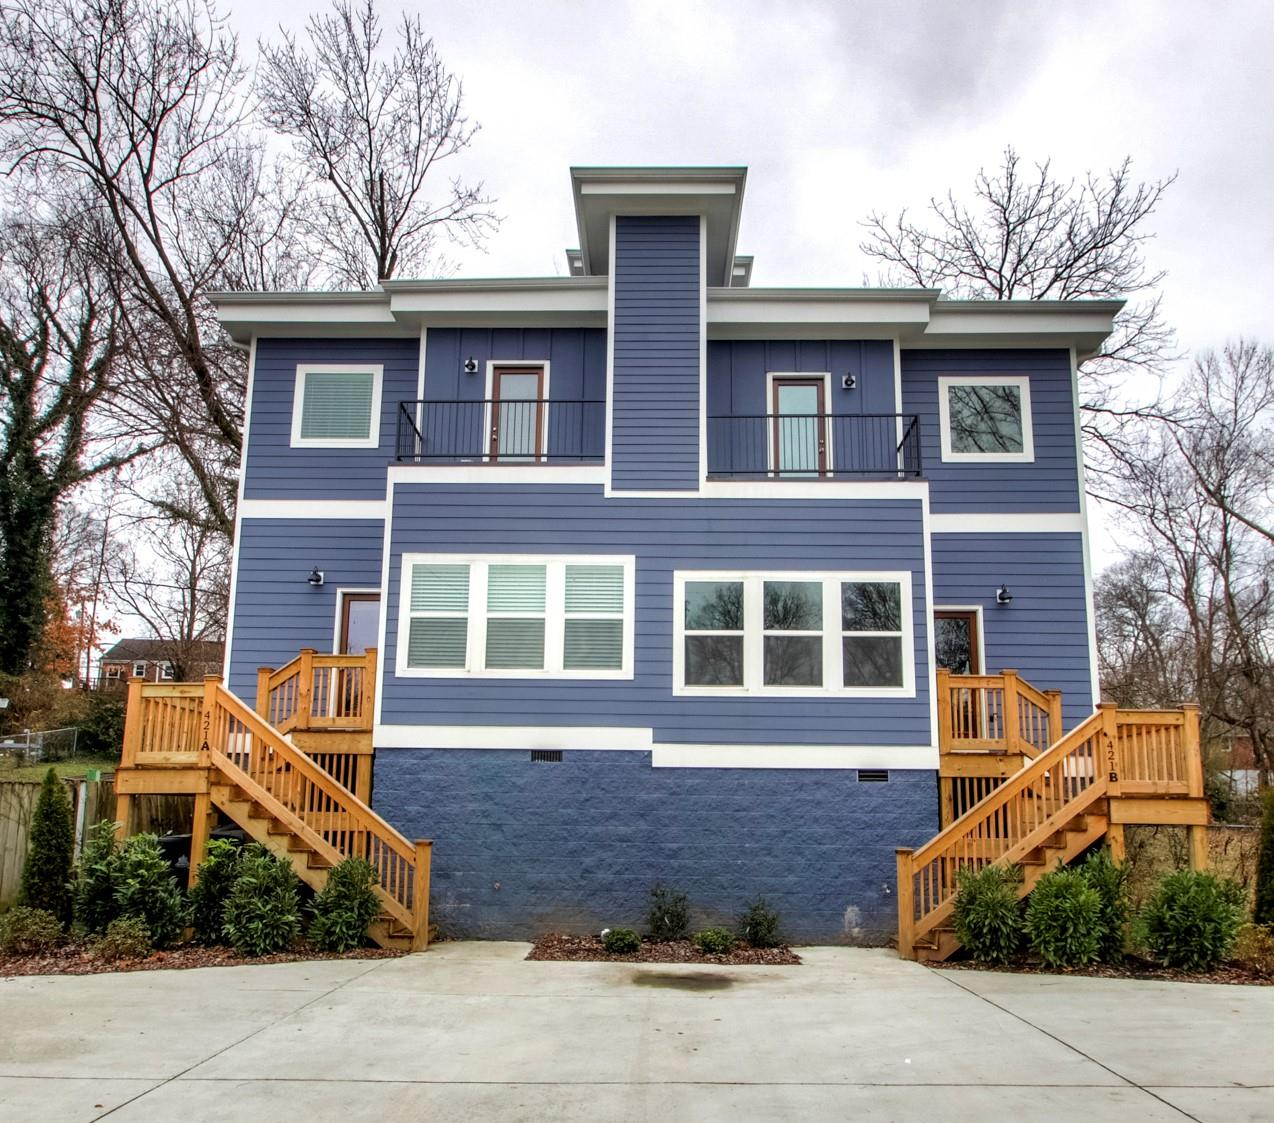 421A Moore Ave, Nashville - Midtown in Davidson County County, TN 37203 Home for Sale